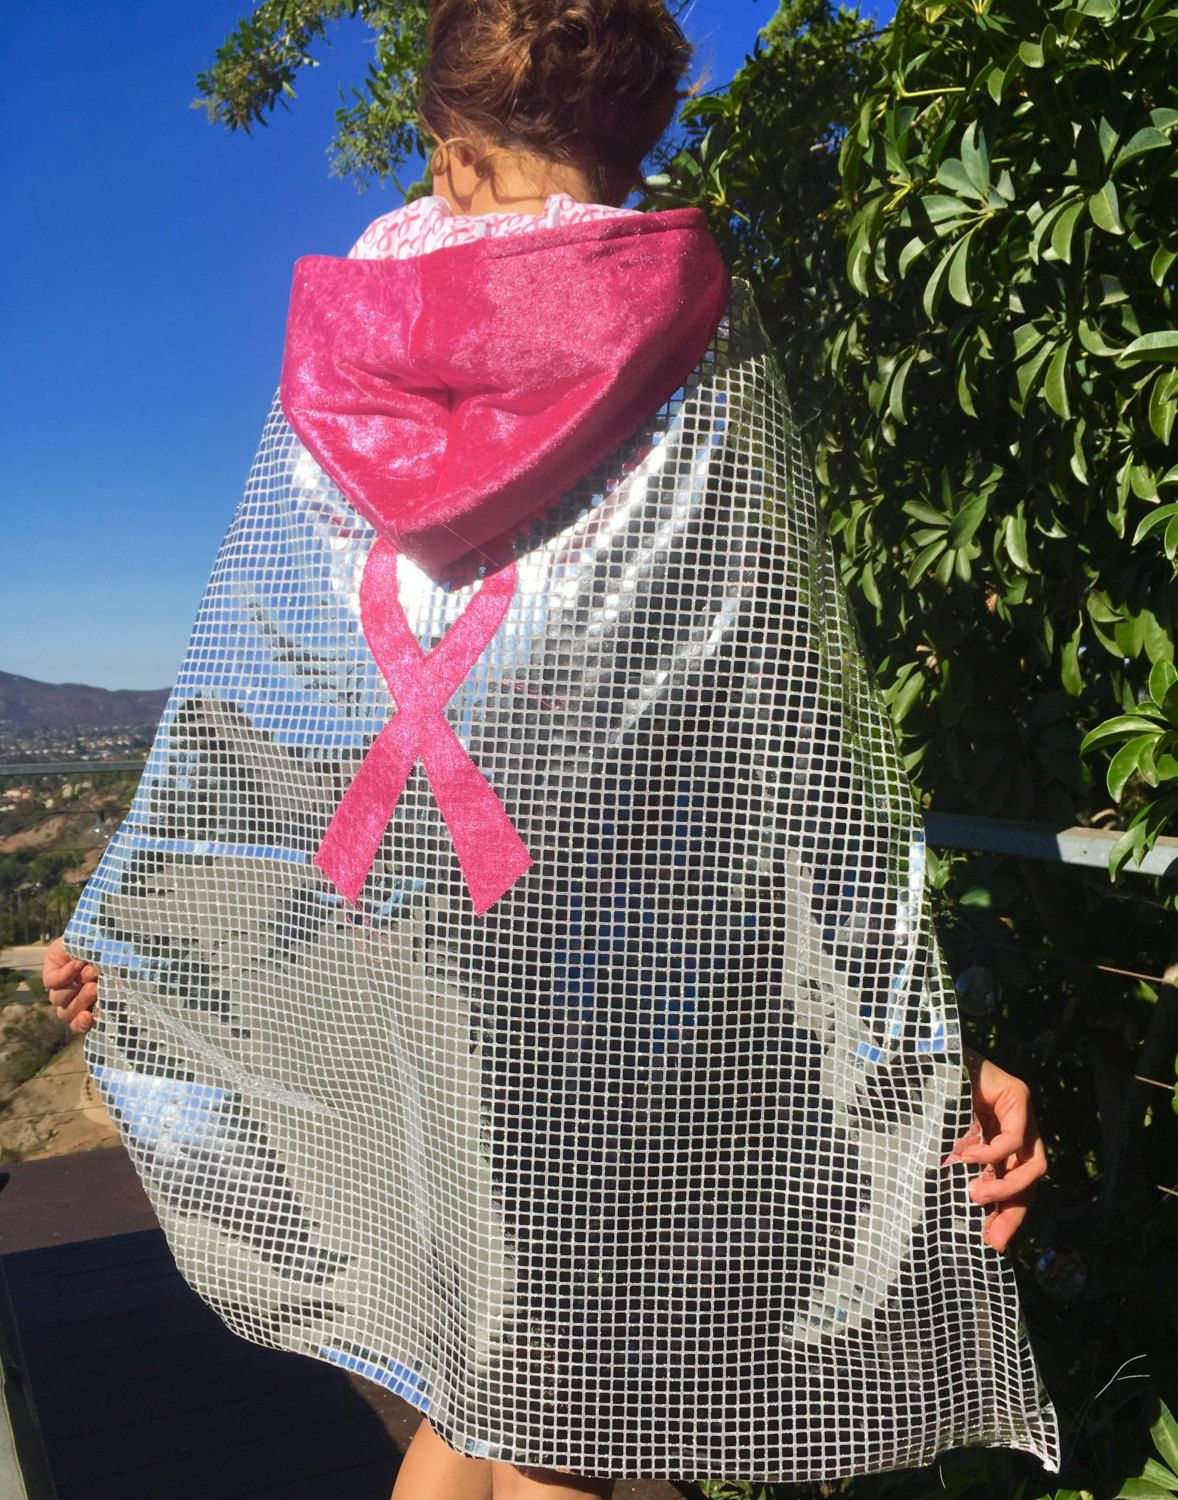 Shiny Hooded Pink Ribbon Superhero Cape for Breast Cancer Awareness H3BX98